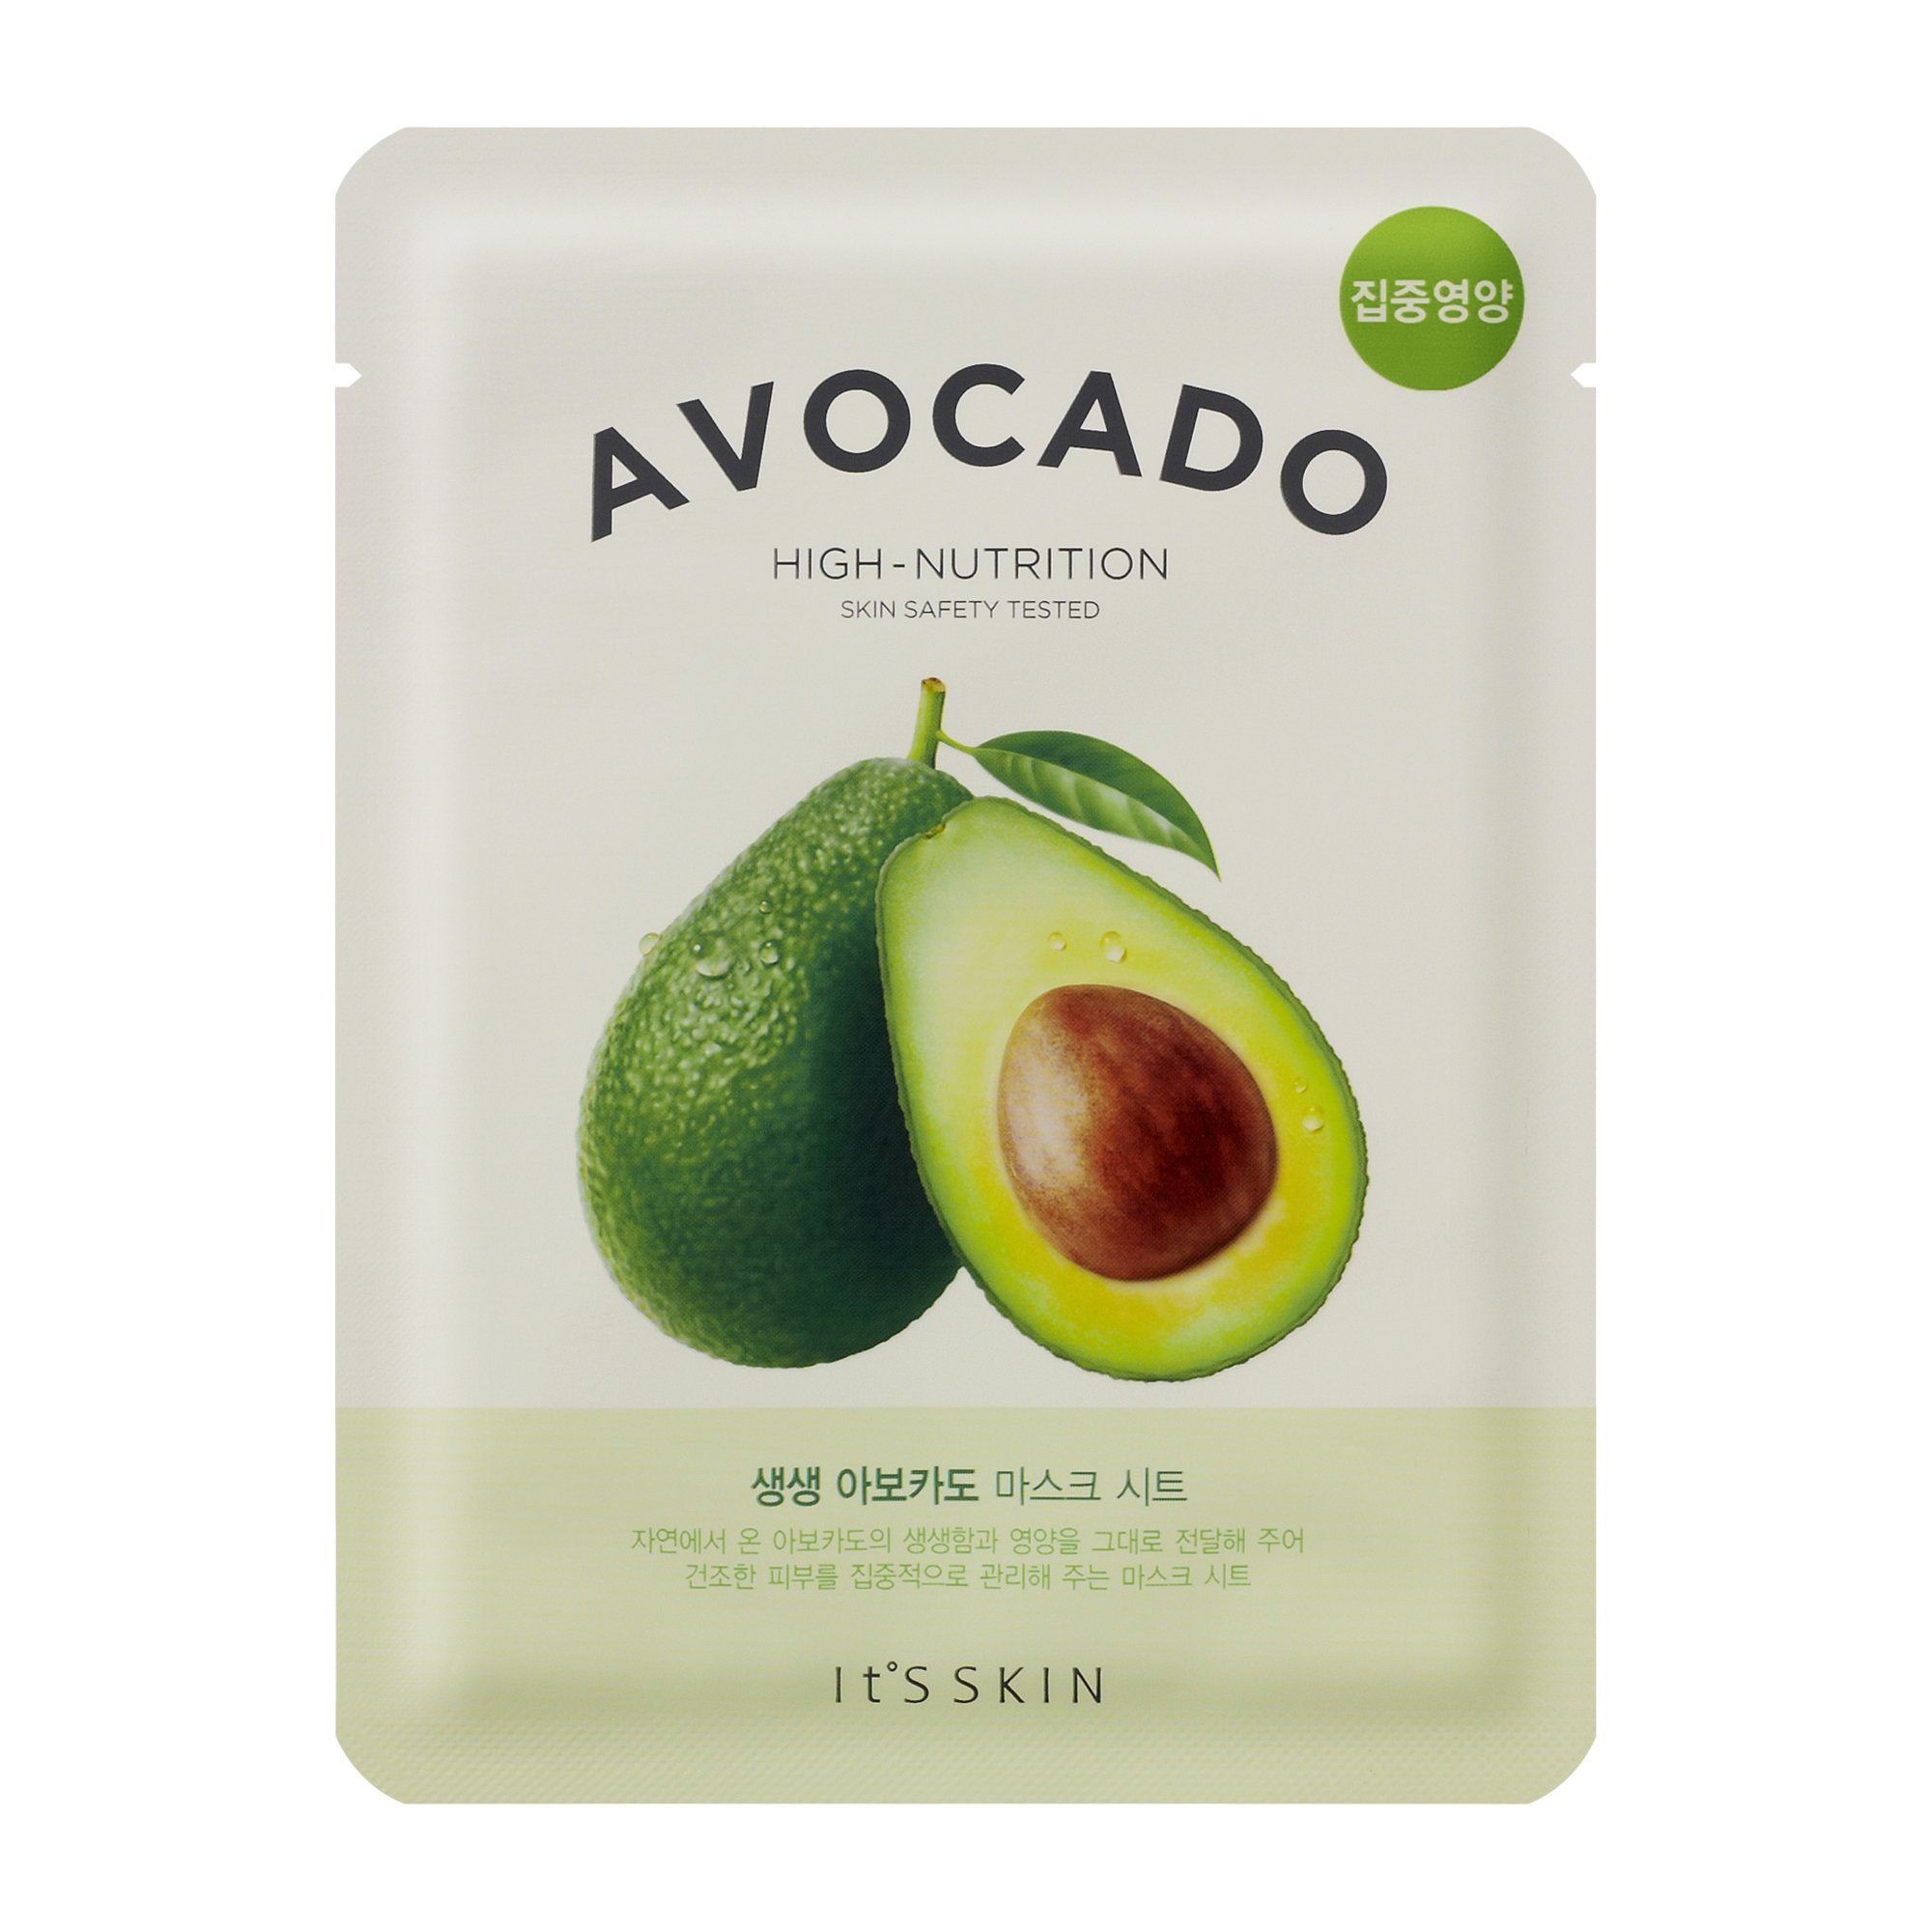 Health & Beauty > Personal Care > Cosmetics > Skin Care > Compressed Skin Care Mask Sheets - The Fresh Mask Sheet Avocado Maska W Płachcie